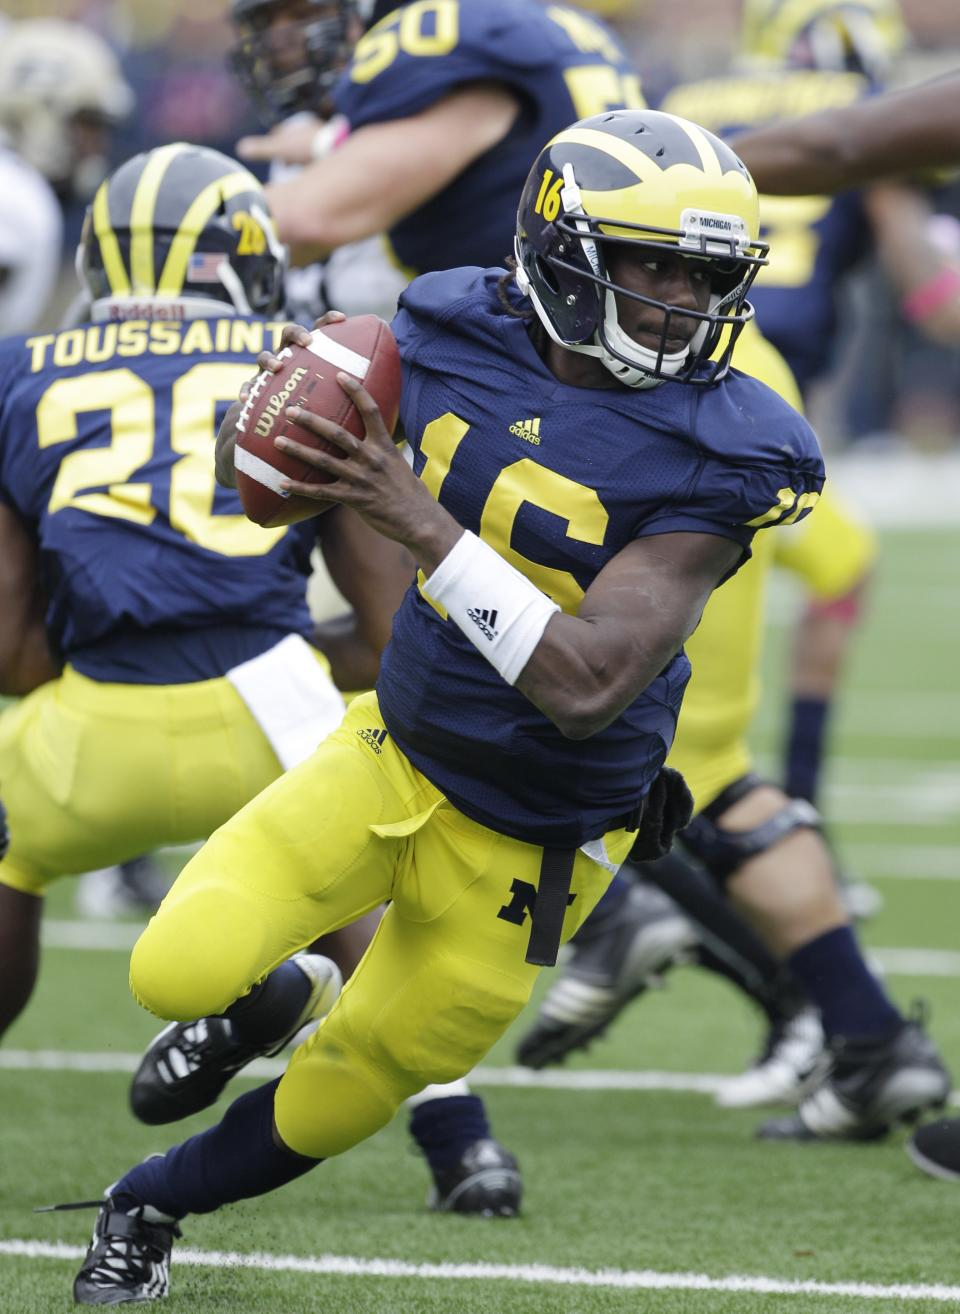 Michigan quarterback Denard Robinson (16) runs during the second quarter of an NCAA college football game against Purdue in Ann Arbor, Mich., Saturday, Oct. 29, 2011. (AP Photo/Carlos Osorio)